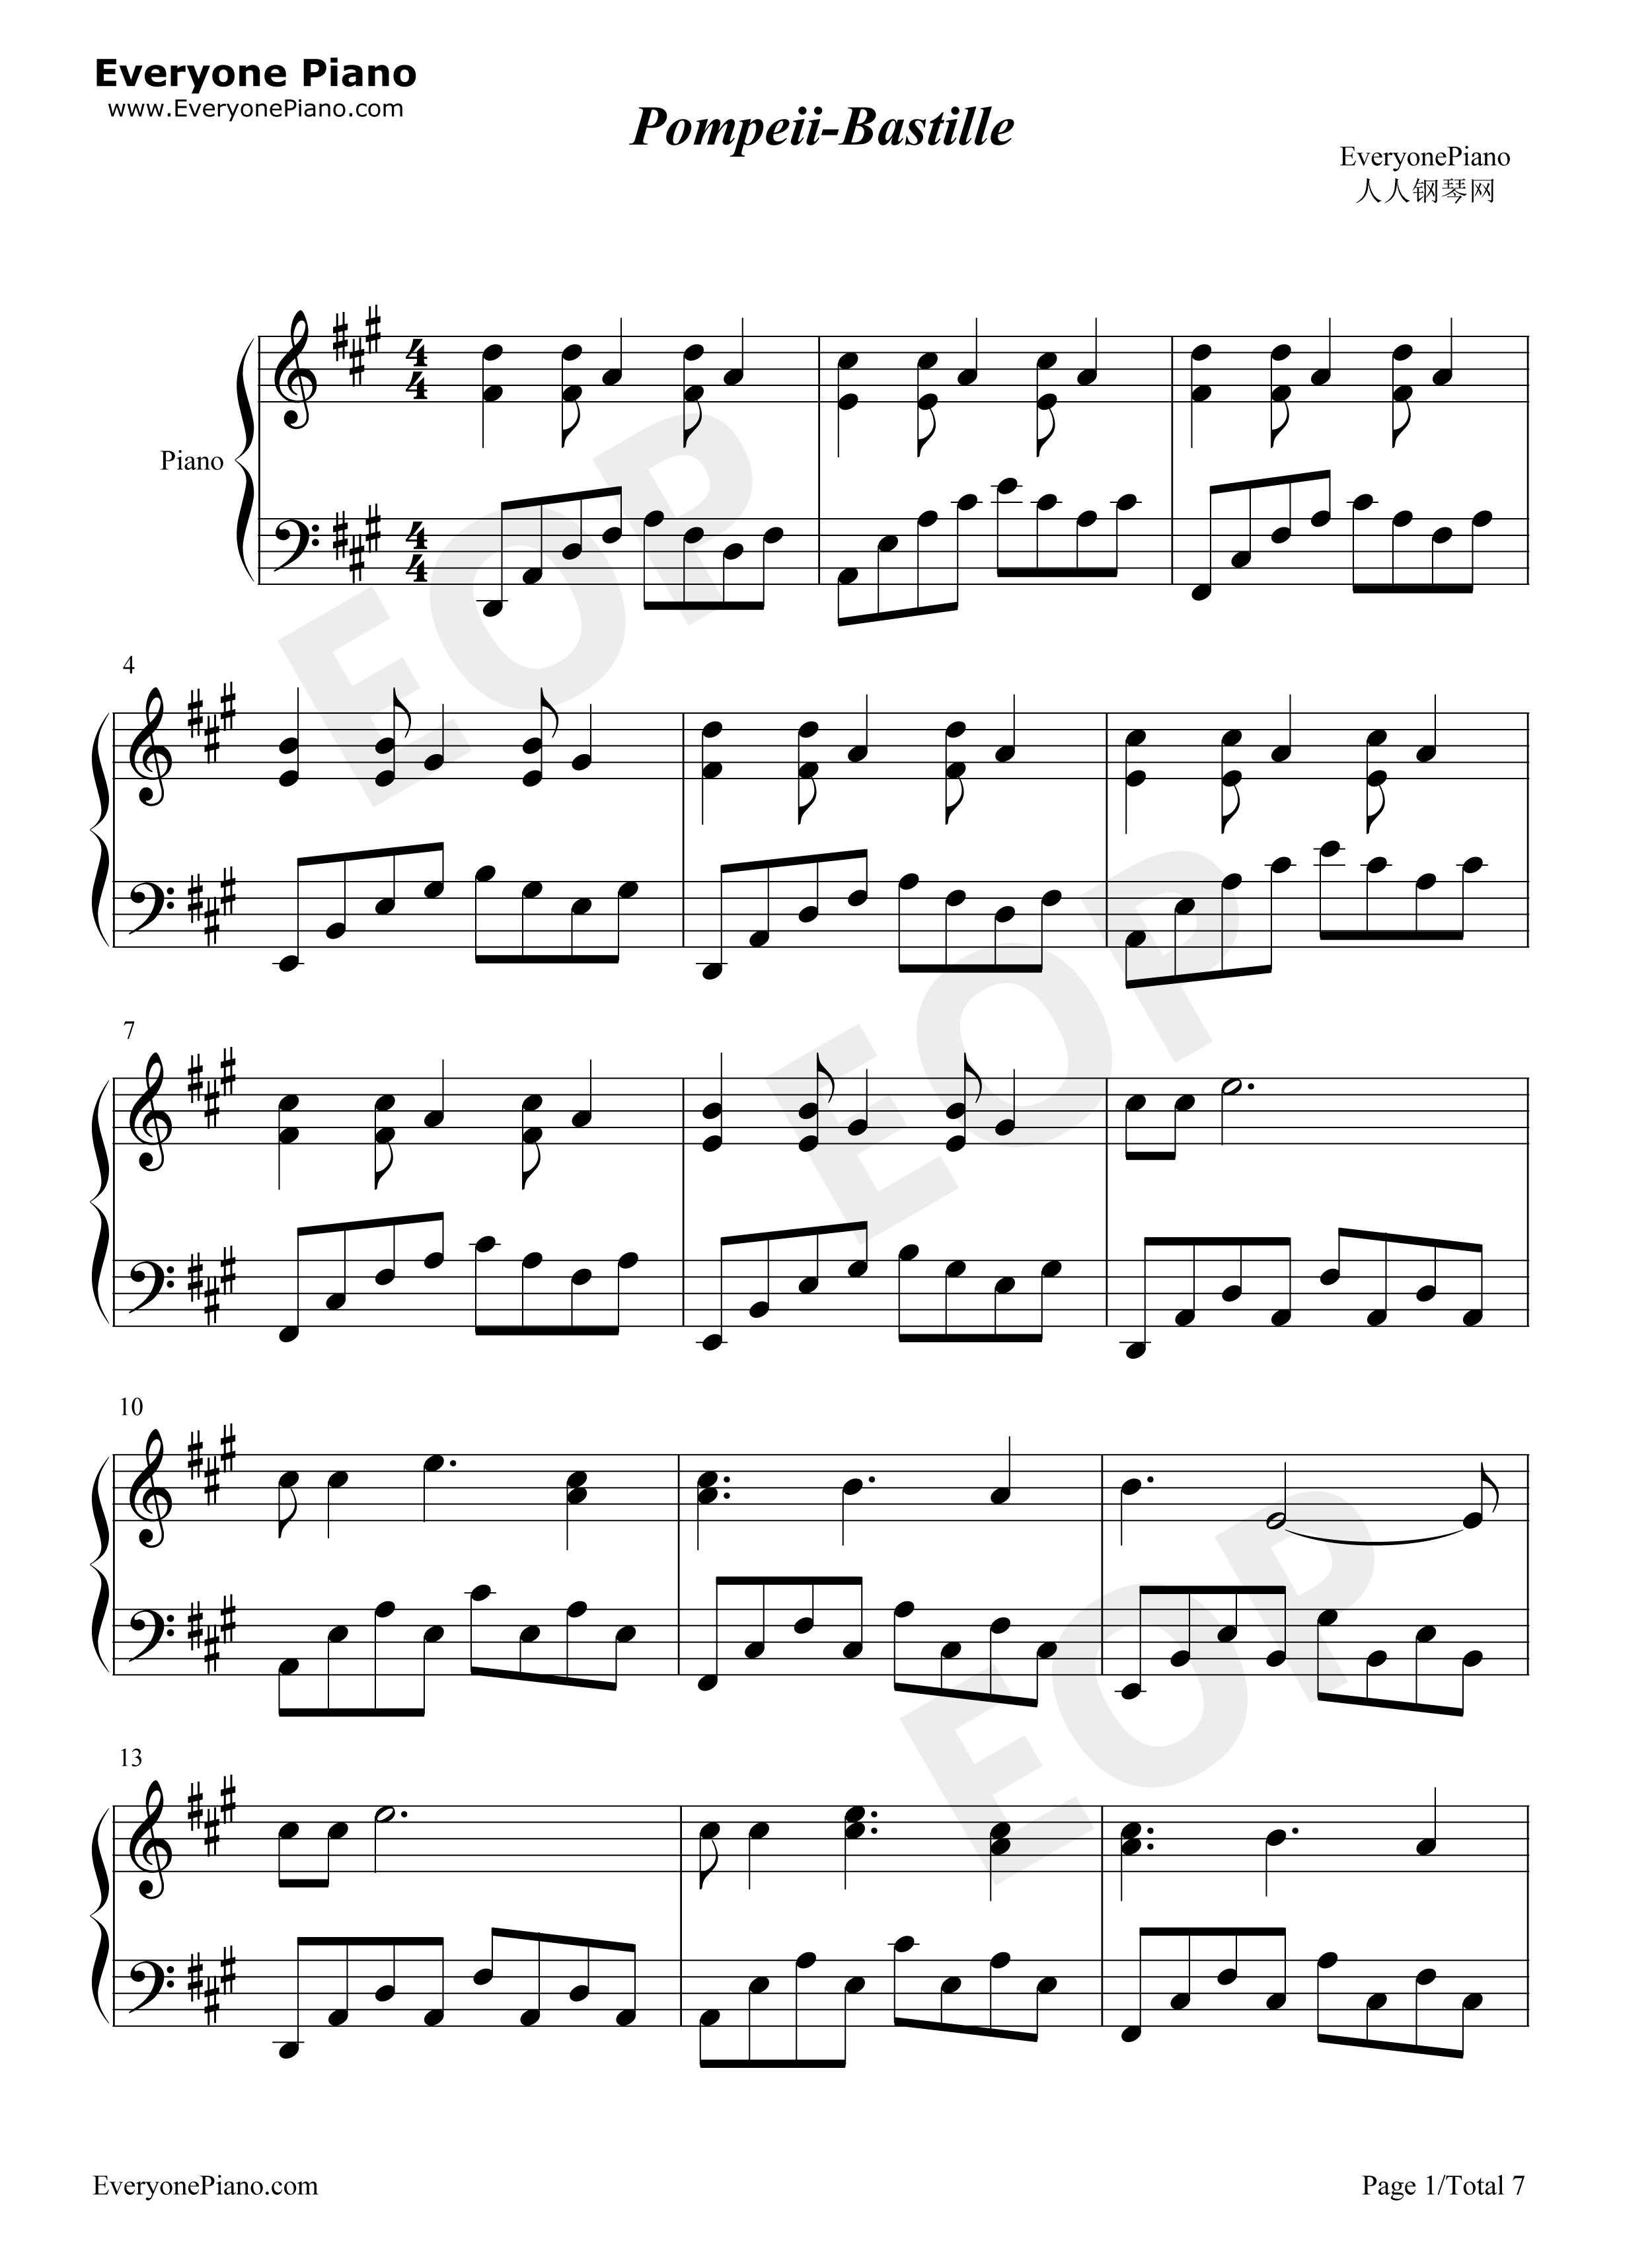 Pompeii Full Version-Bastille Stave Preview 1-Free Piano Sheet Music u0026 Piano Chords